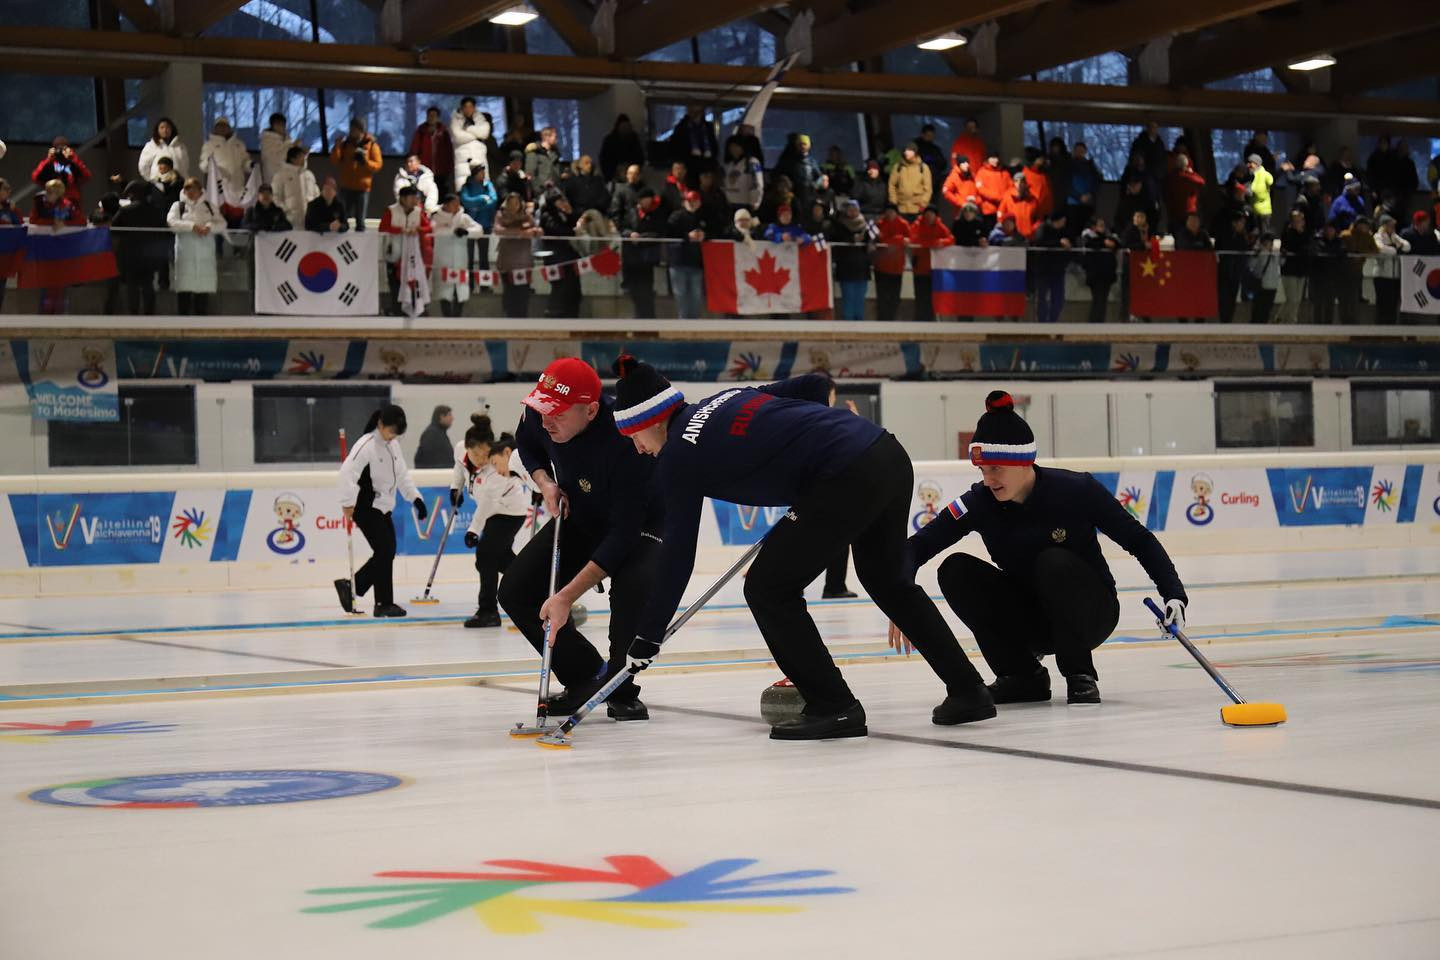 Russia are through to the men's and women's curling finals at the Winter Deaflympics in Sondrio ©Winter Deaflympics Valtellina-Valchiavenna 2019/Facebook